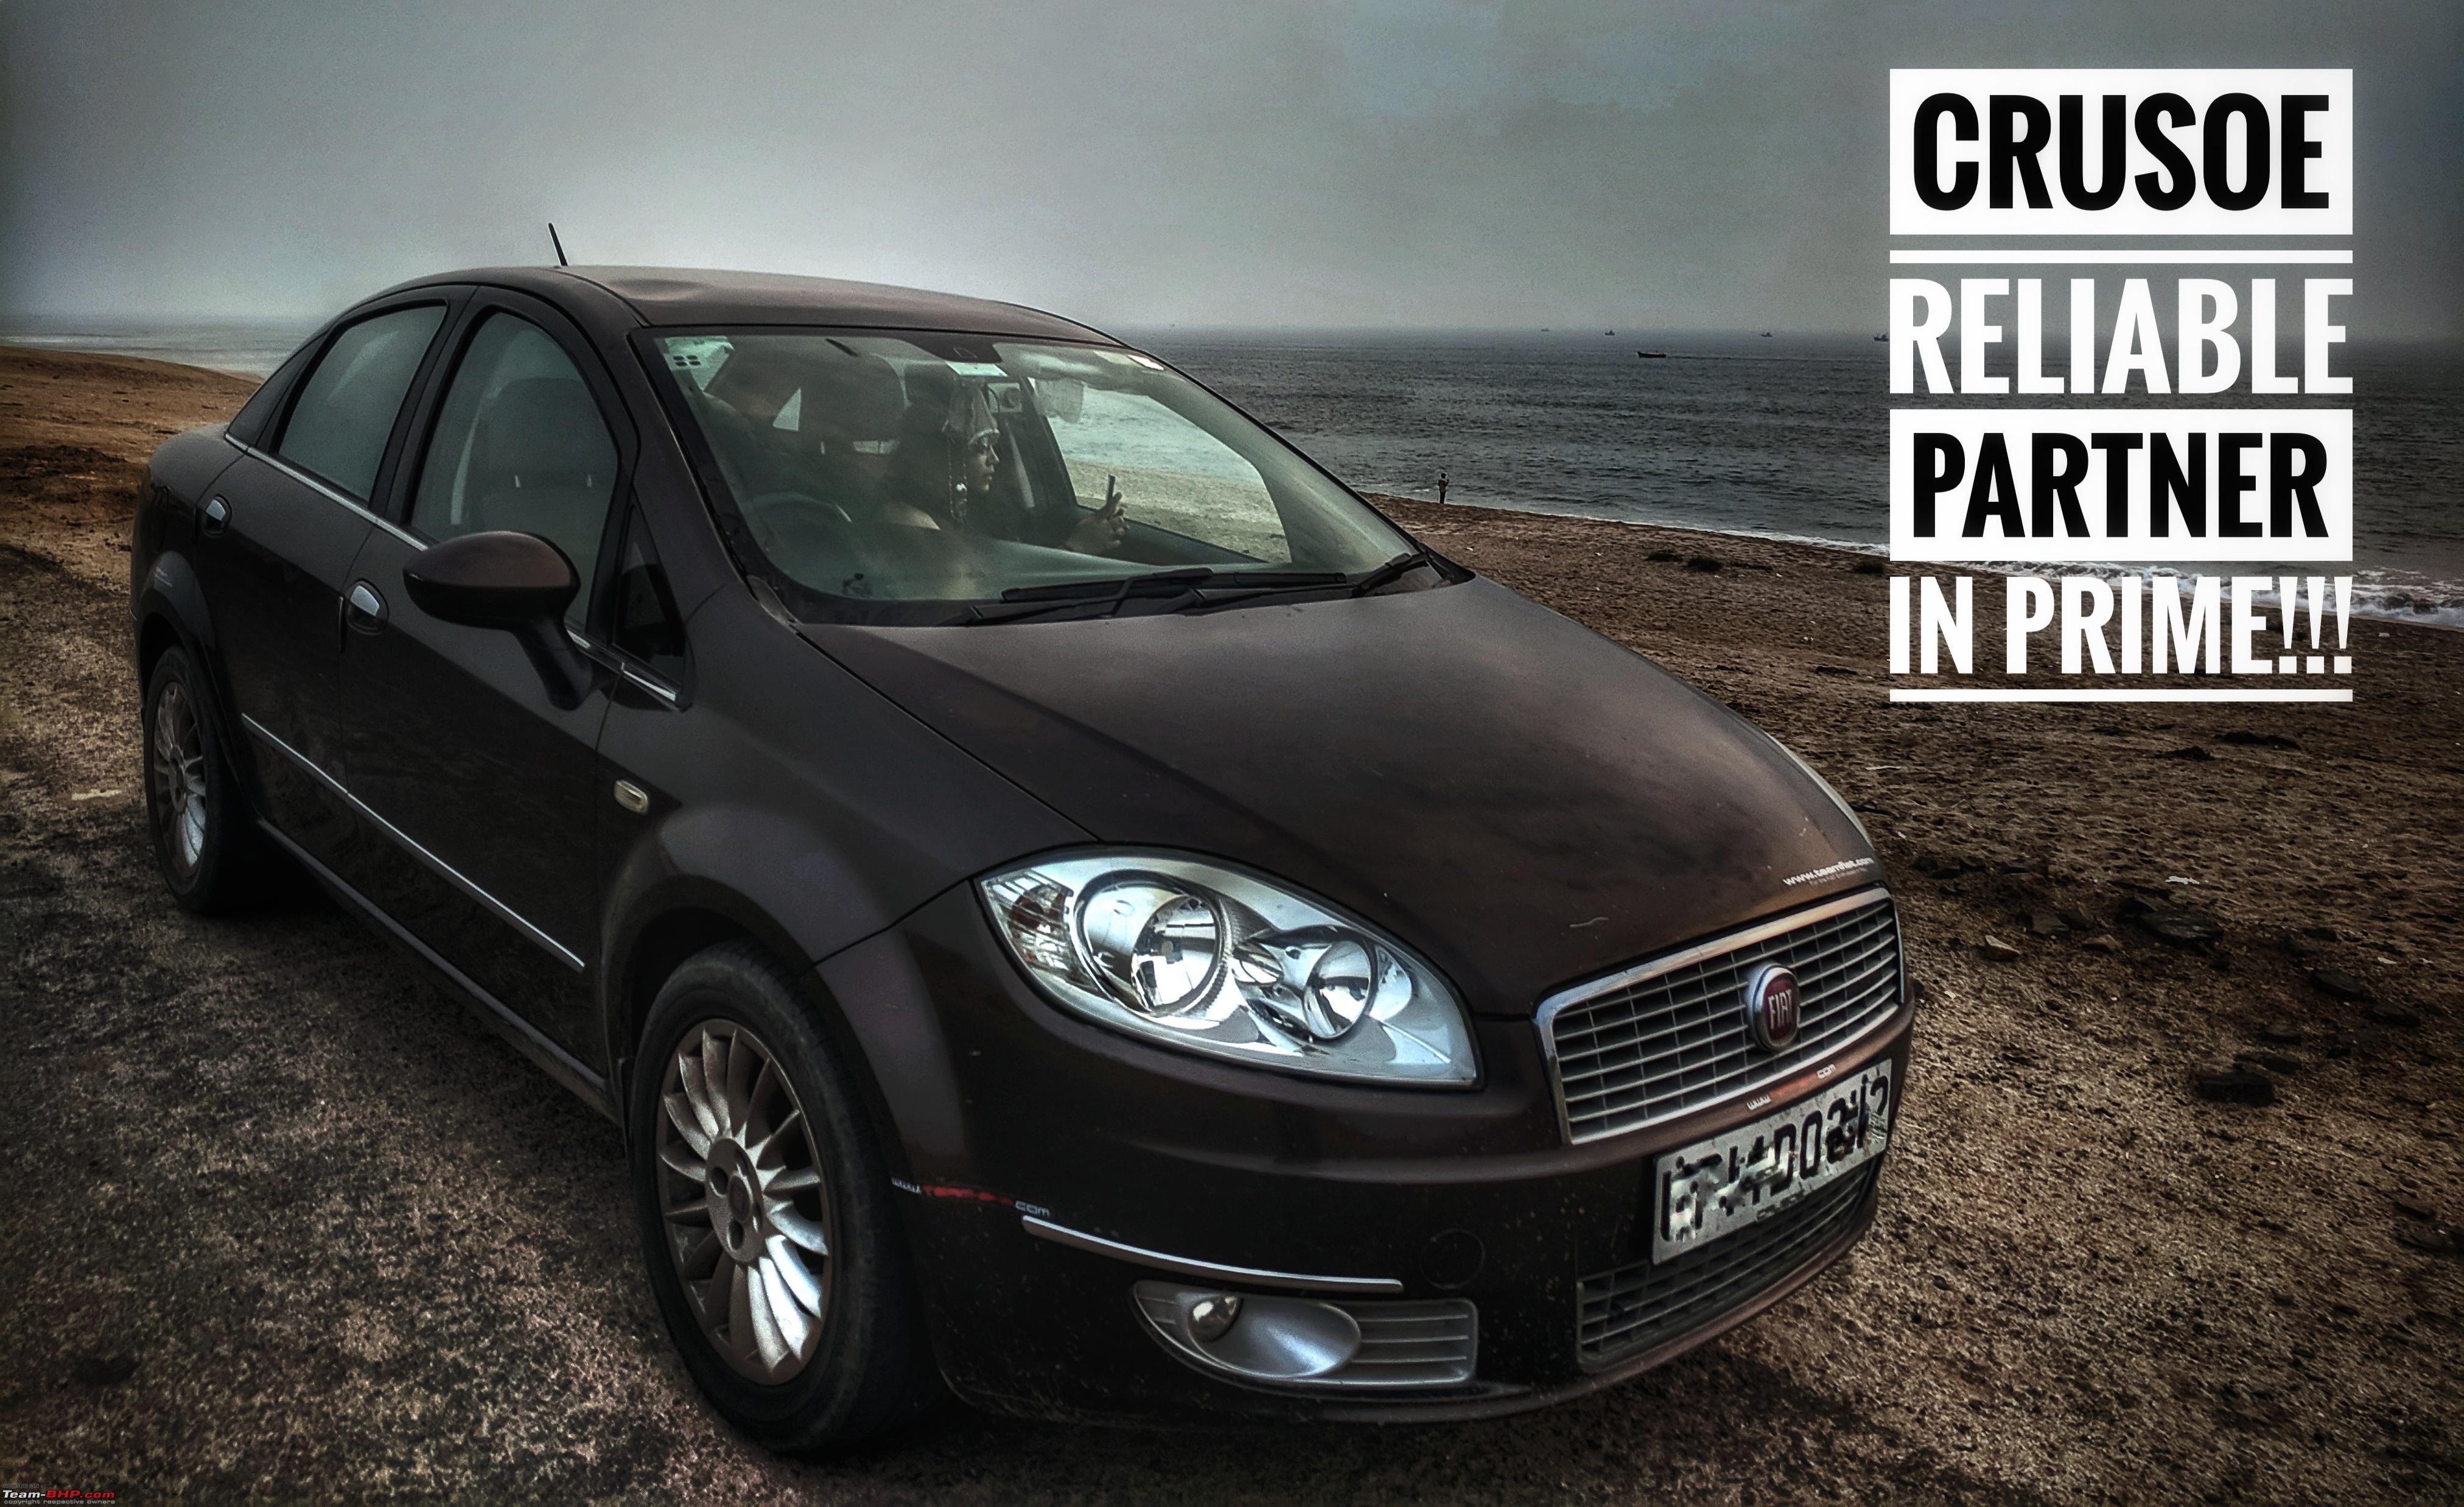 All Hail Crusoe  Fiat Linea T-jet    Six Years And 54 000 Km Up  - Page 19